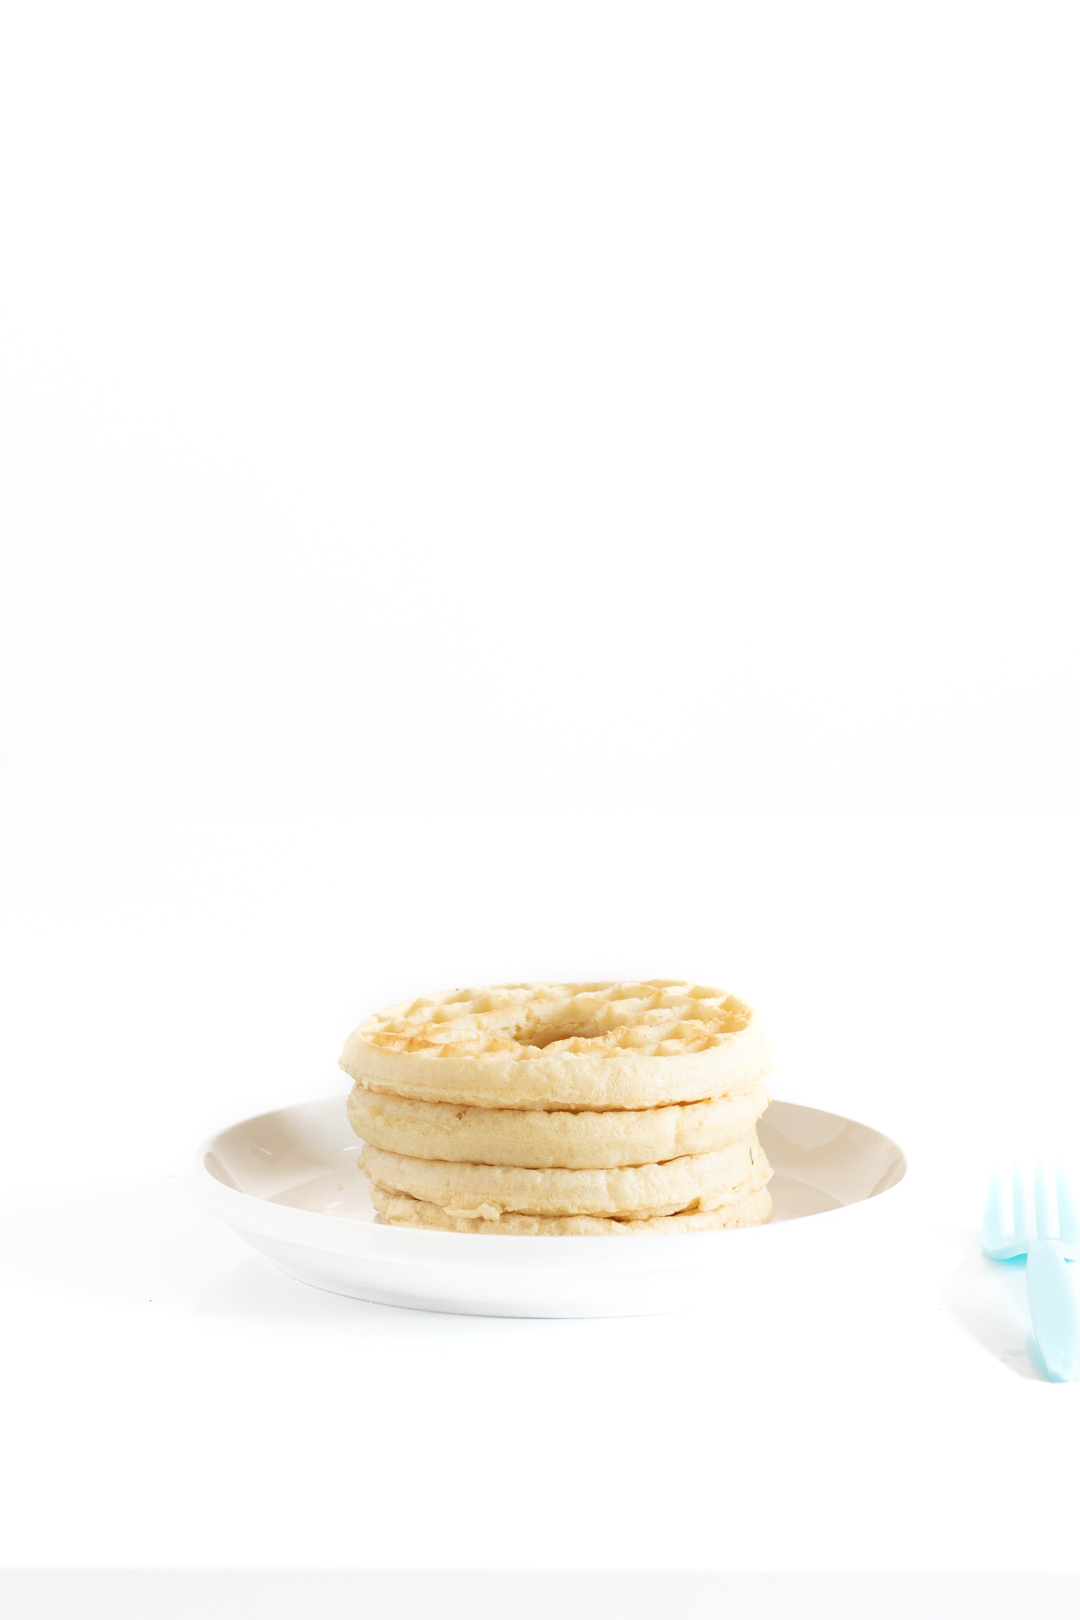 waffle stack with circle cut out in the center for a piñata effect